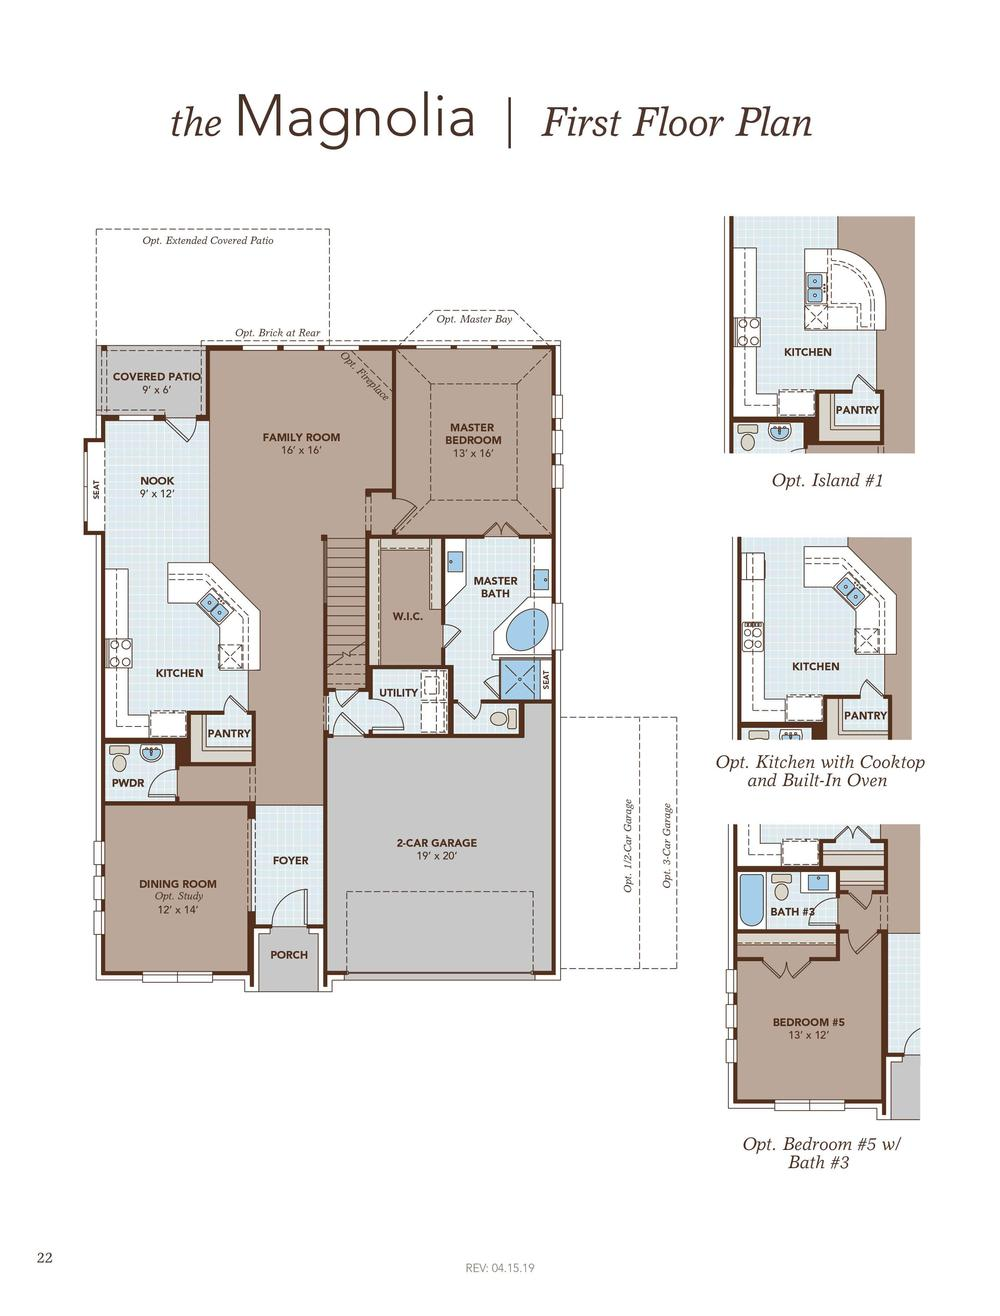 Magnolia Home Plan by Gehan Homes in Sunfield on